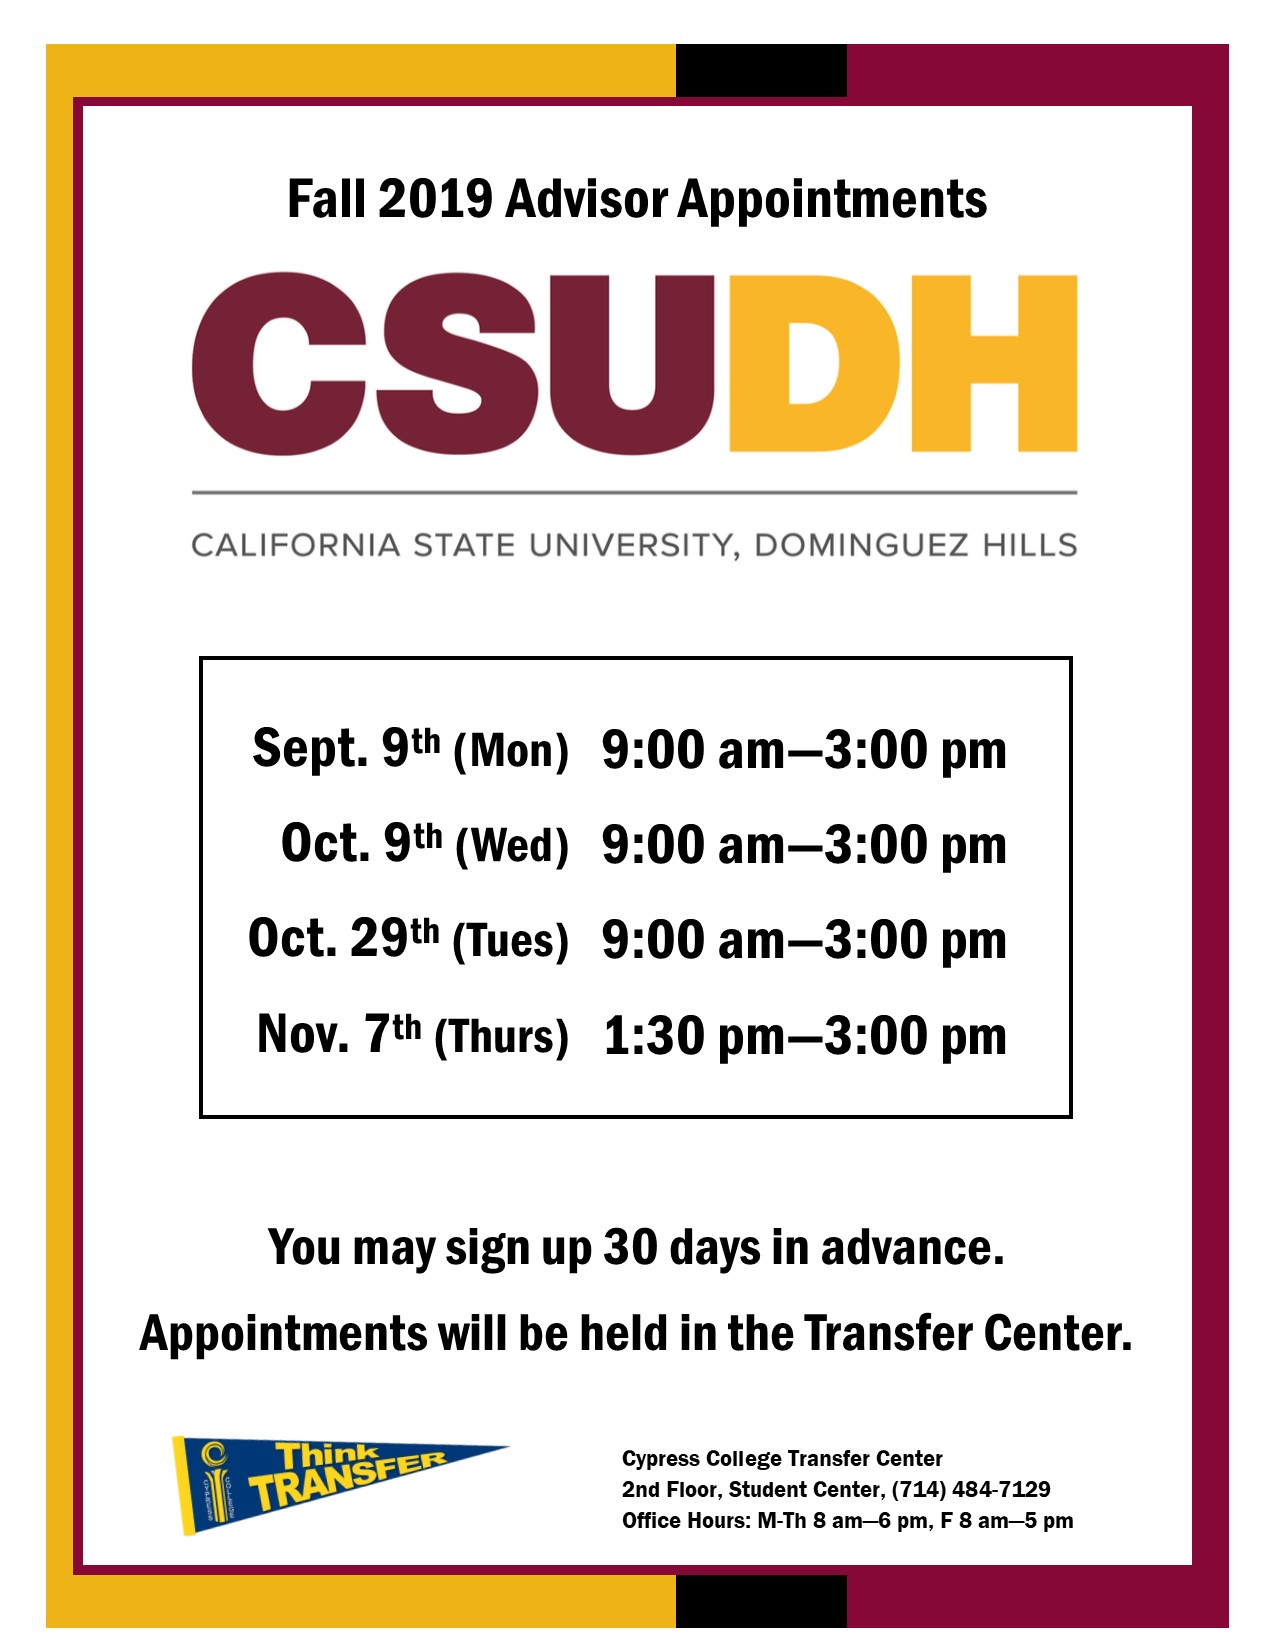 2019 CSUDH advisor appointments dates and times